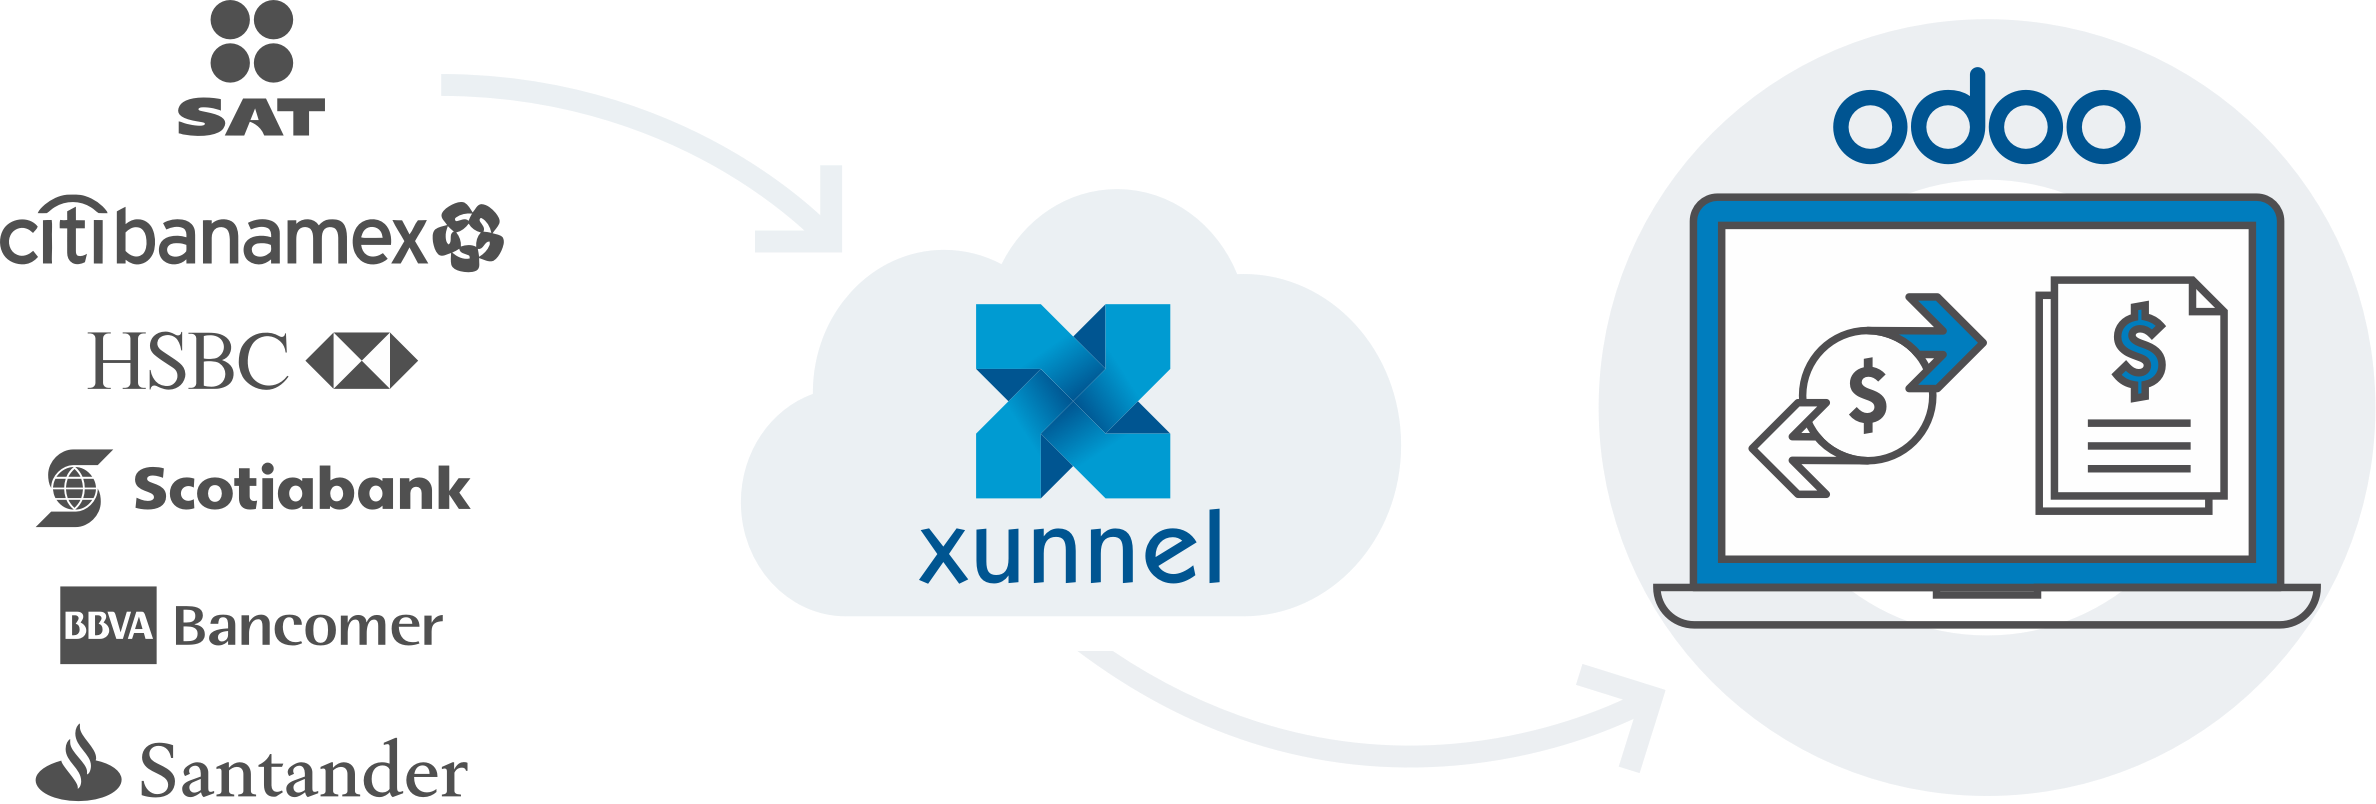 How Xunnel Works